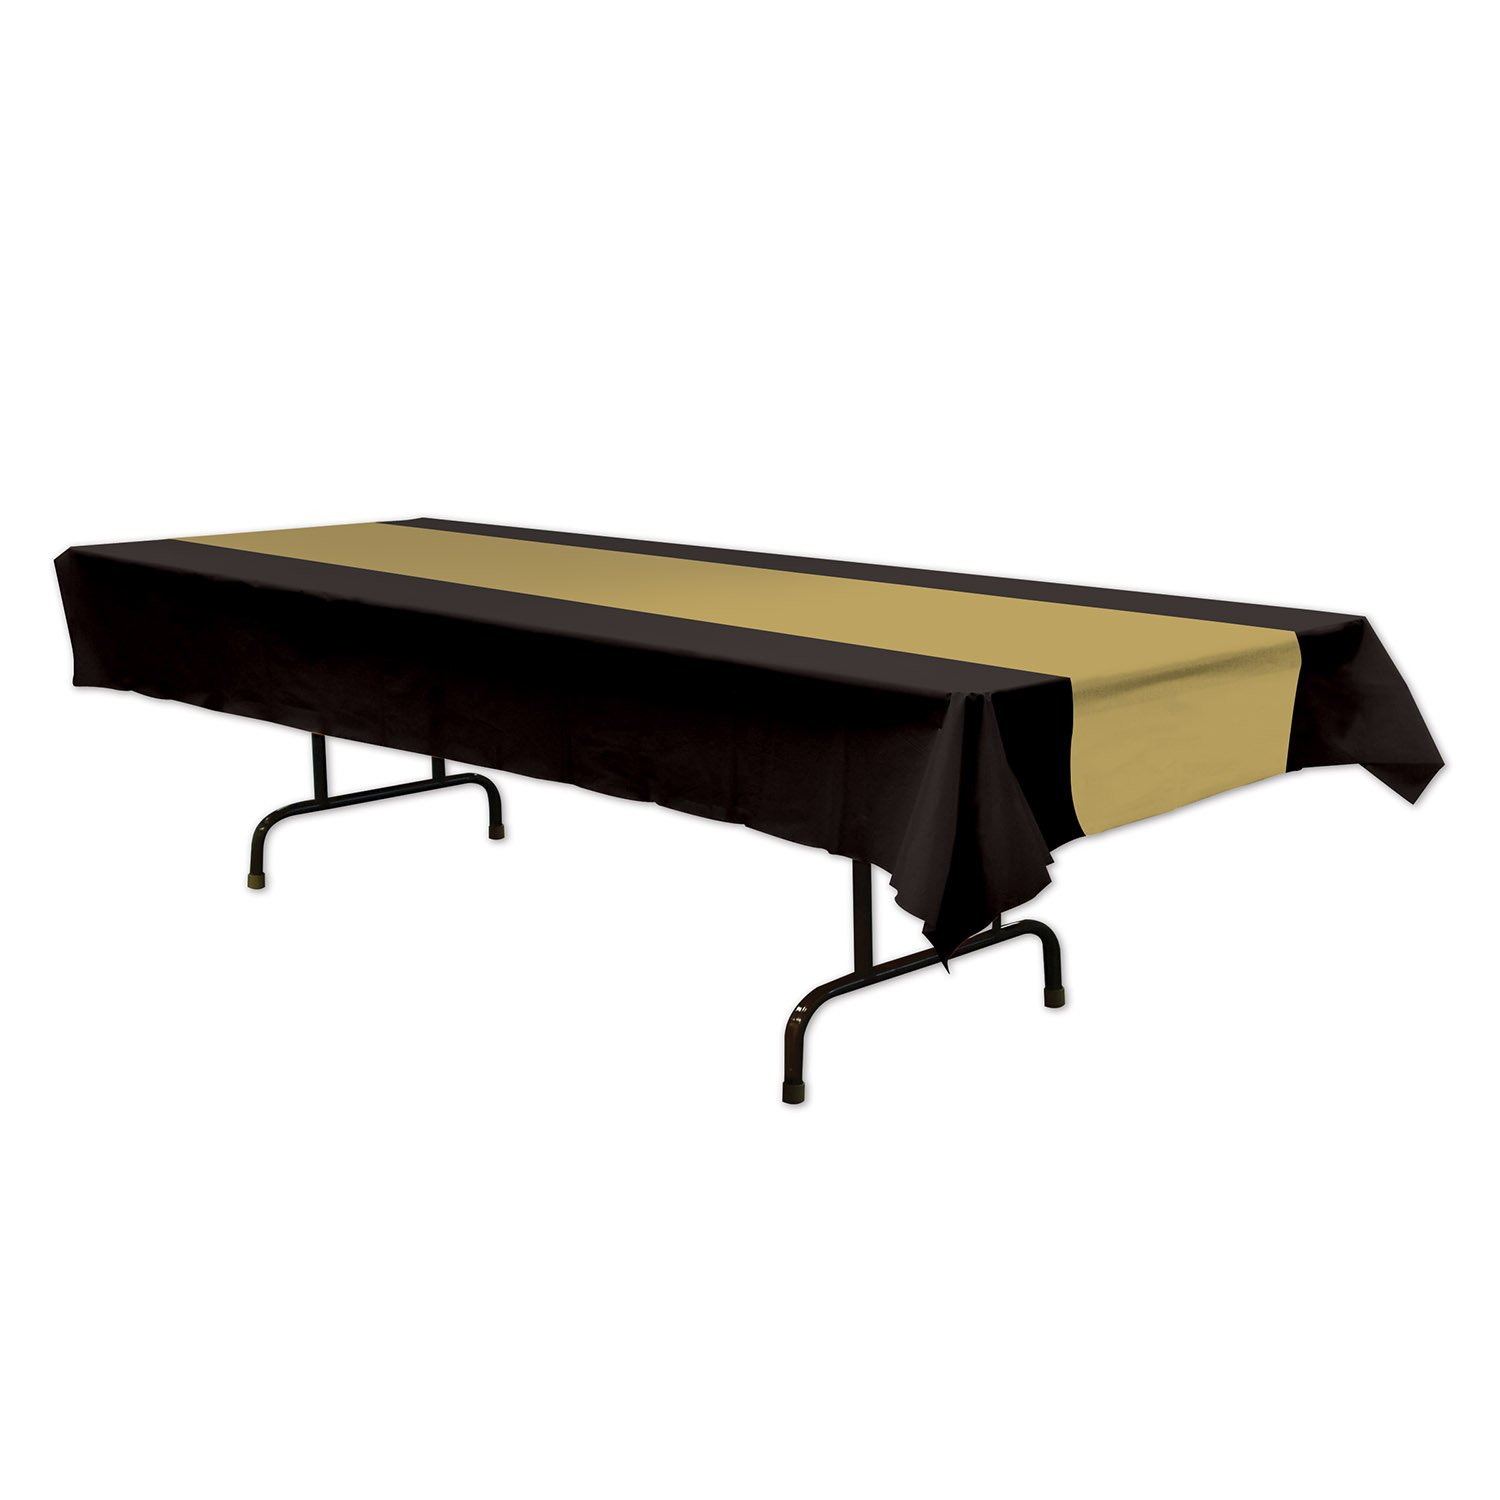 Beistle S57940-BKGDAZ2 Black & Gold Tablecover 2 Piece Black/Gold